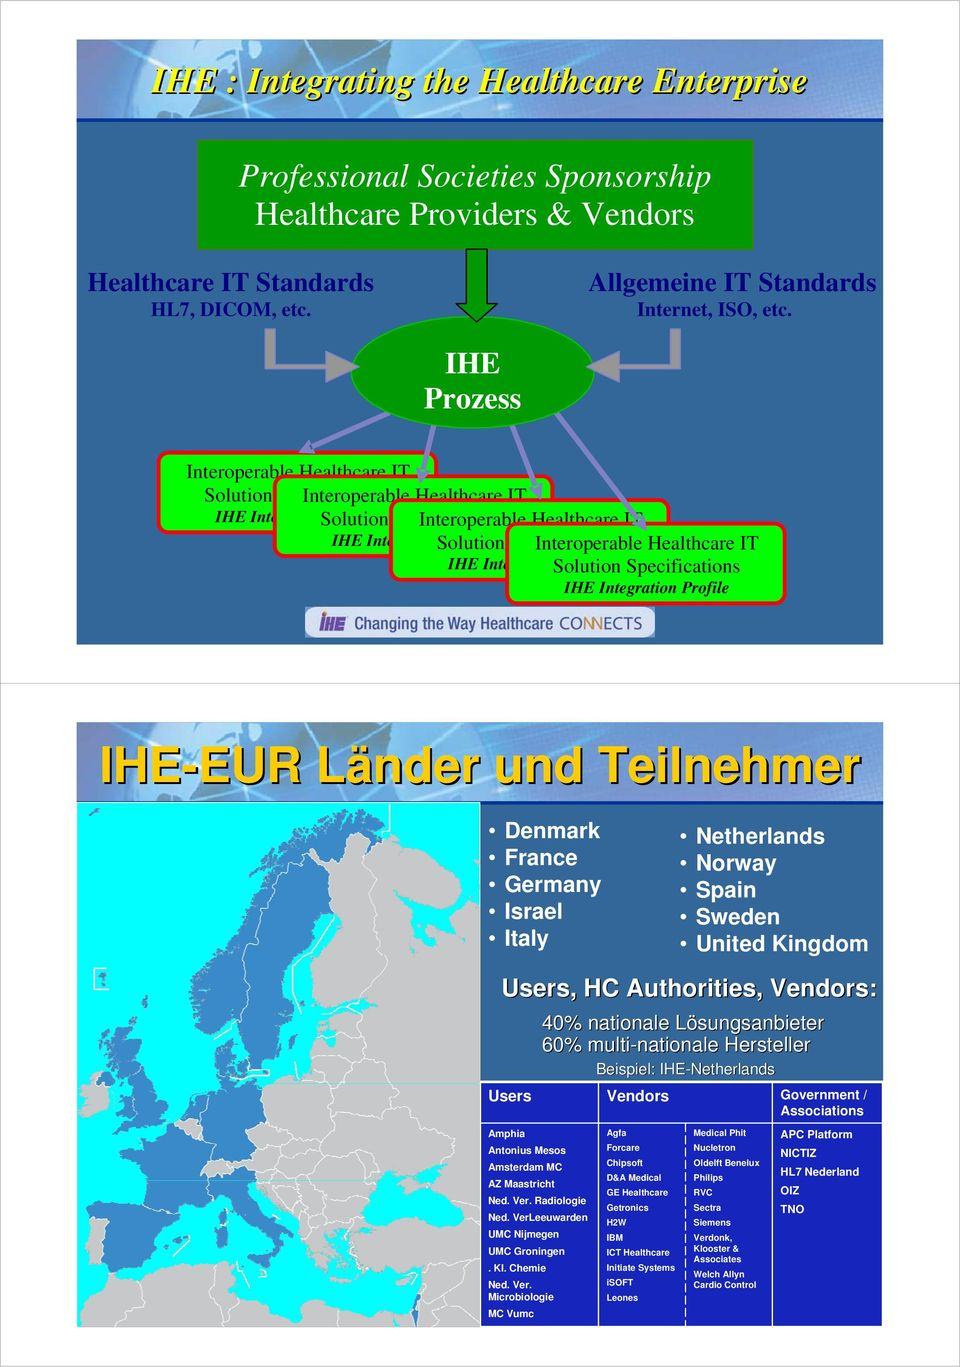 Profile Specifications Interoperable Healthcare IT IHE Integration Solution Profile Specifications IHE Integration Profile IHE-EUR EUR Länder und Teilnehmer Denmark France Germany Israel Italy